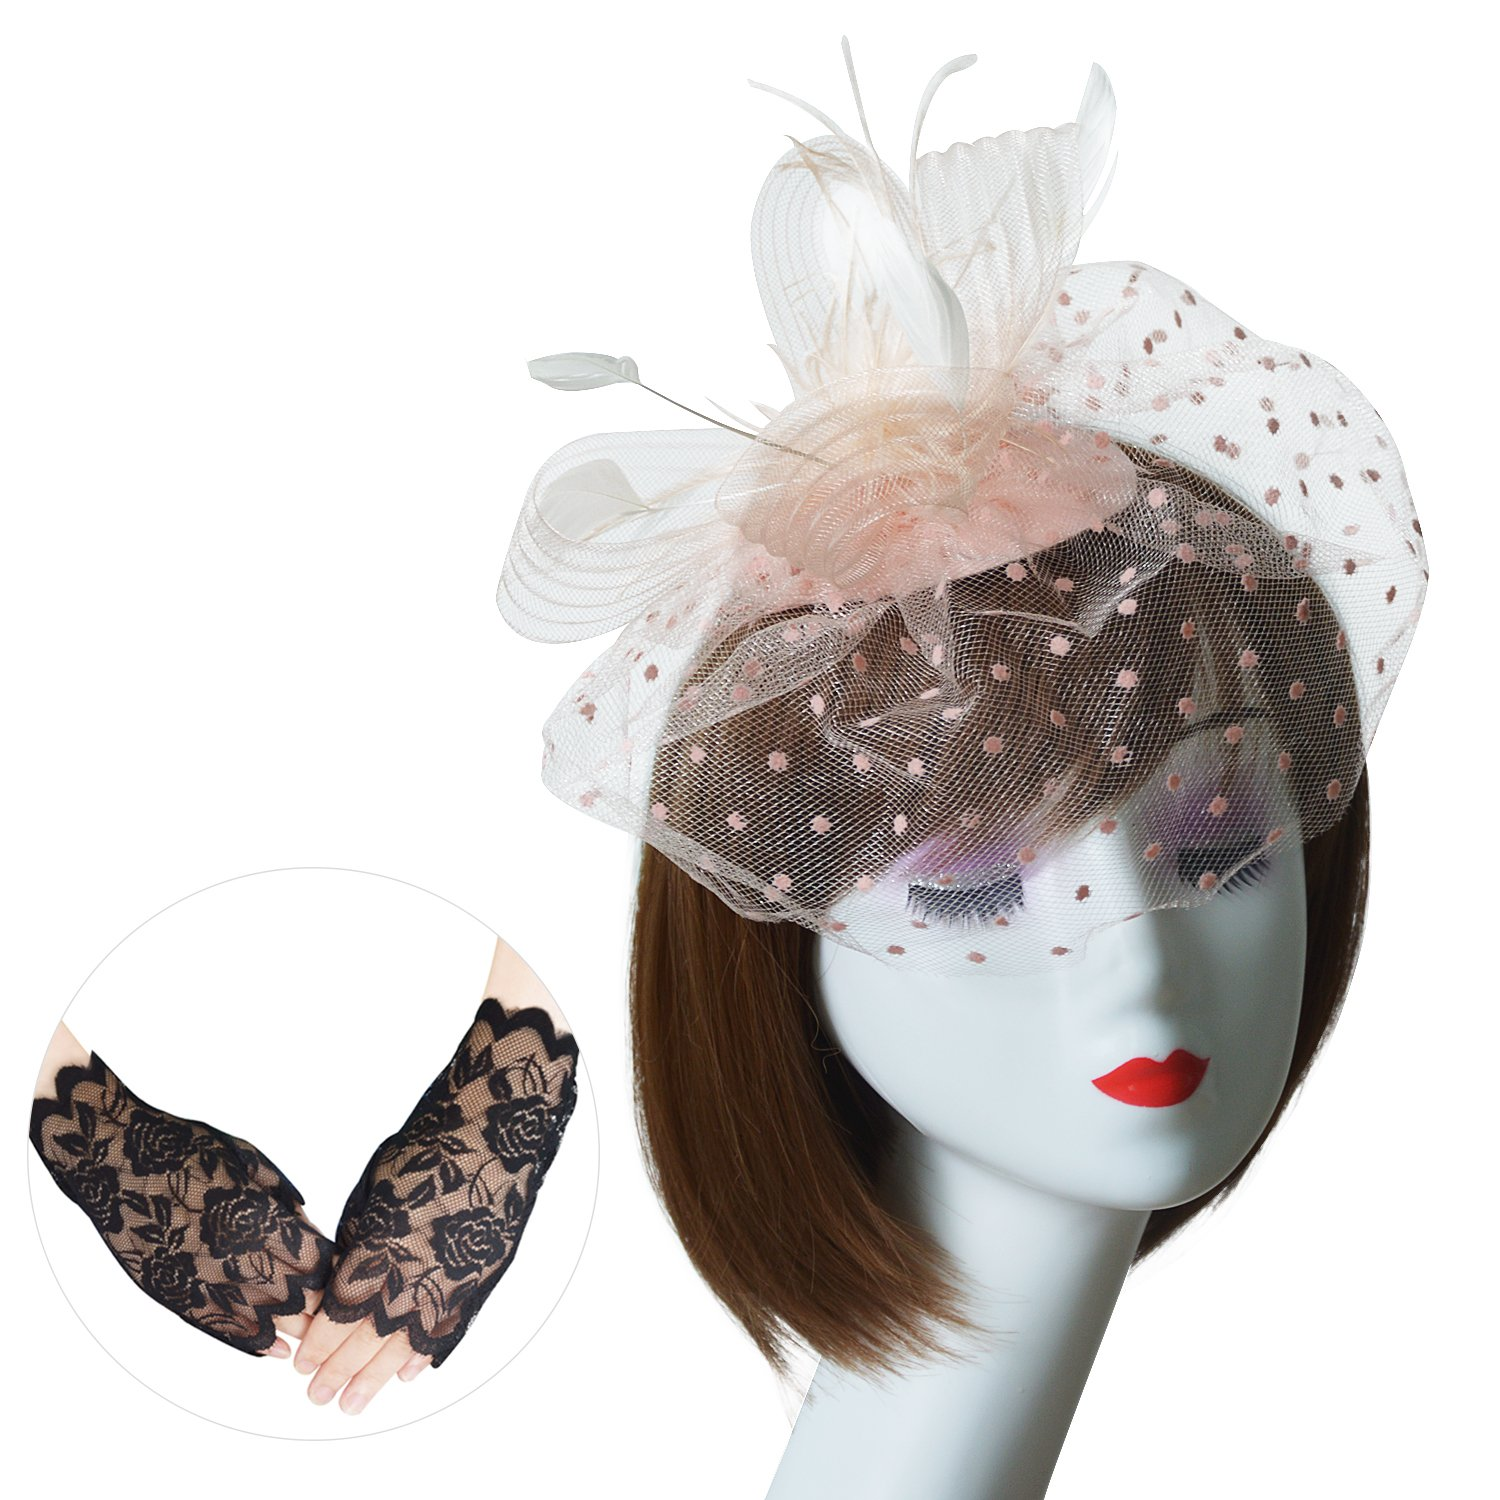 U-Zomir Fascinator Hat Feather Mesh Party Hat Flower Wedding Derby Cocktail Tea Party Headband with Clip and Lace Glove for Girls and Women (Style 2-Champagne)